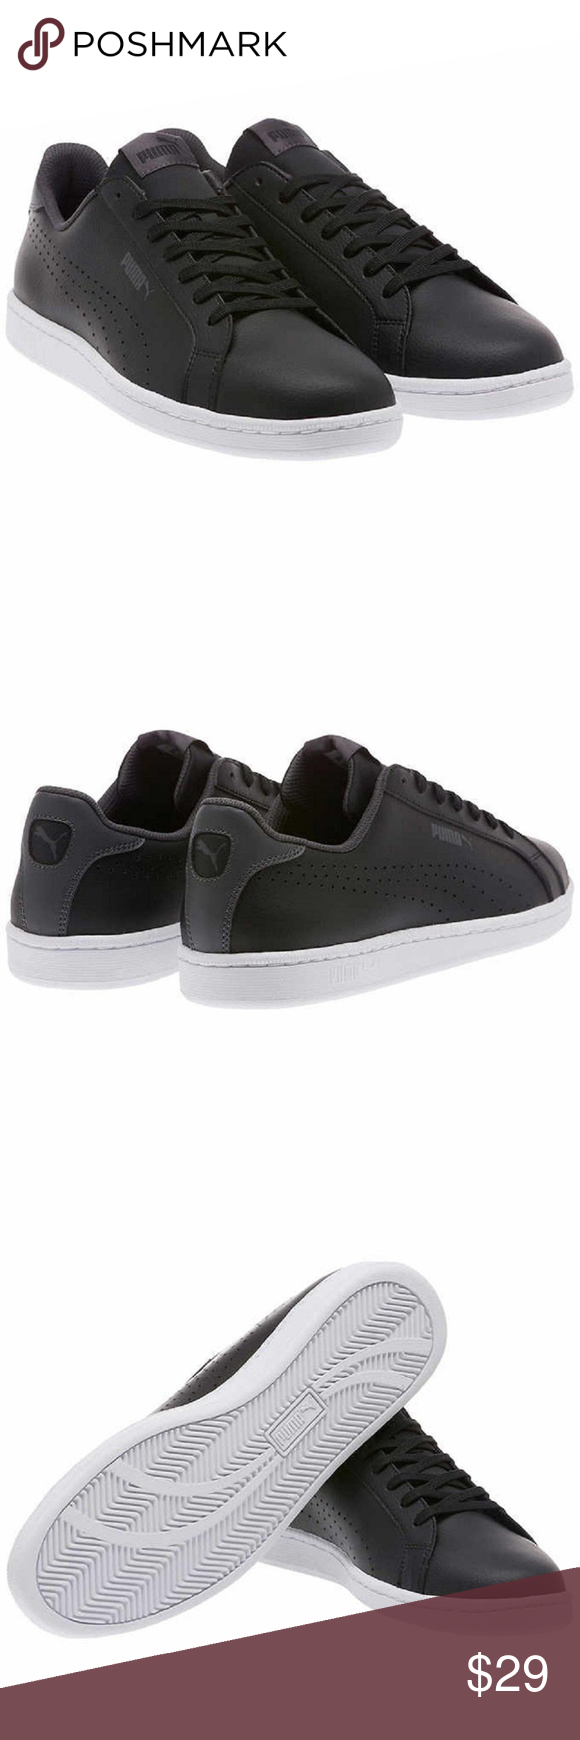 c51521c3c9a4 PUMA Smash Leather Classic Sneaker